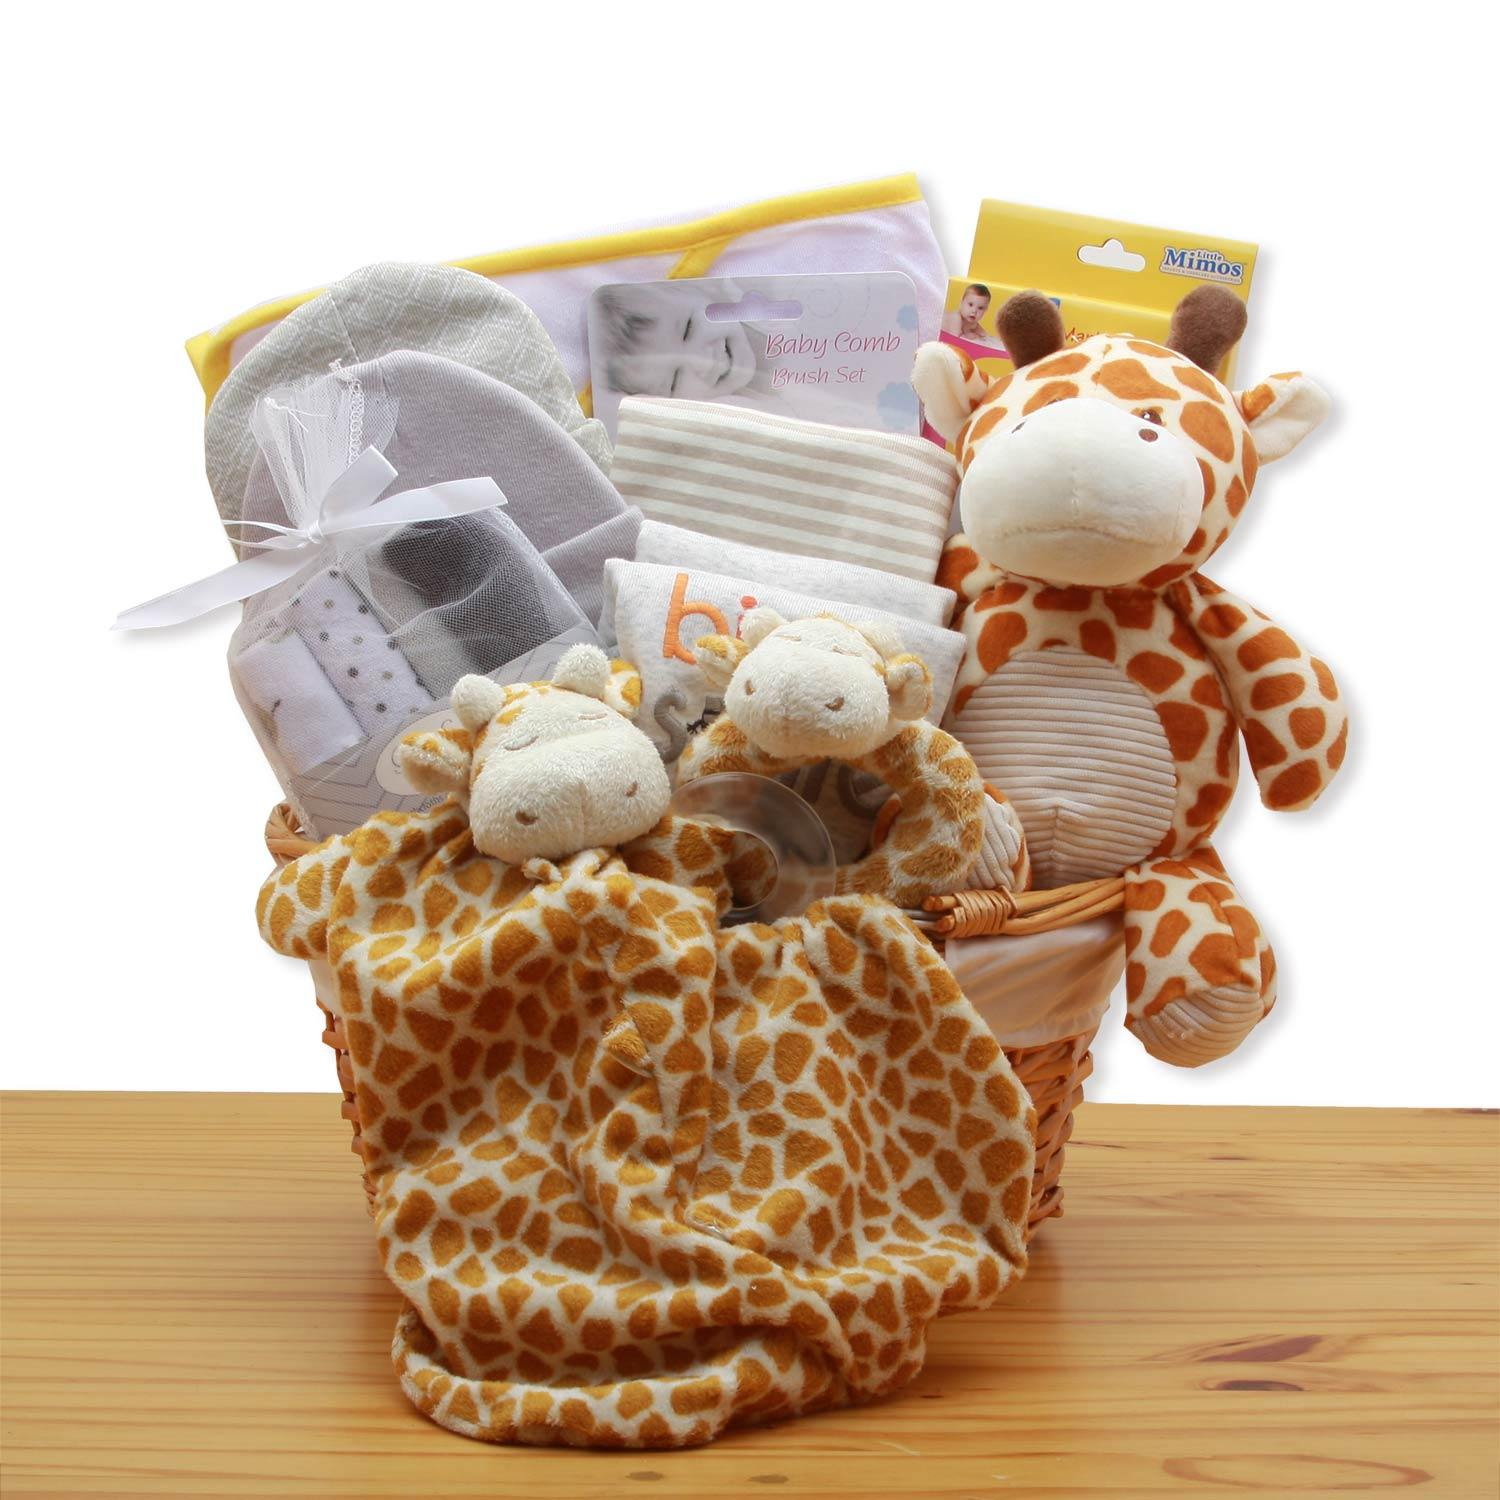 Deluxe Giraffe Themed Basket in Neutral Colors